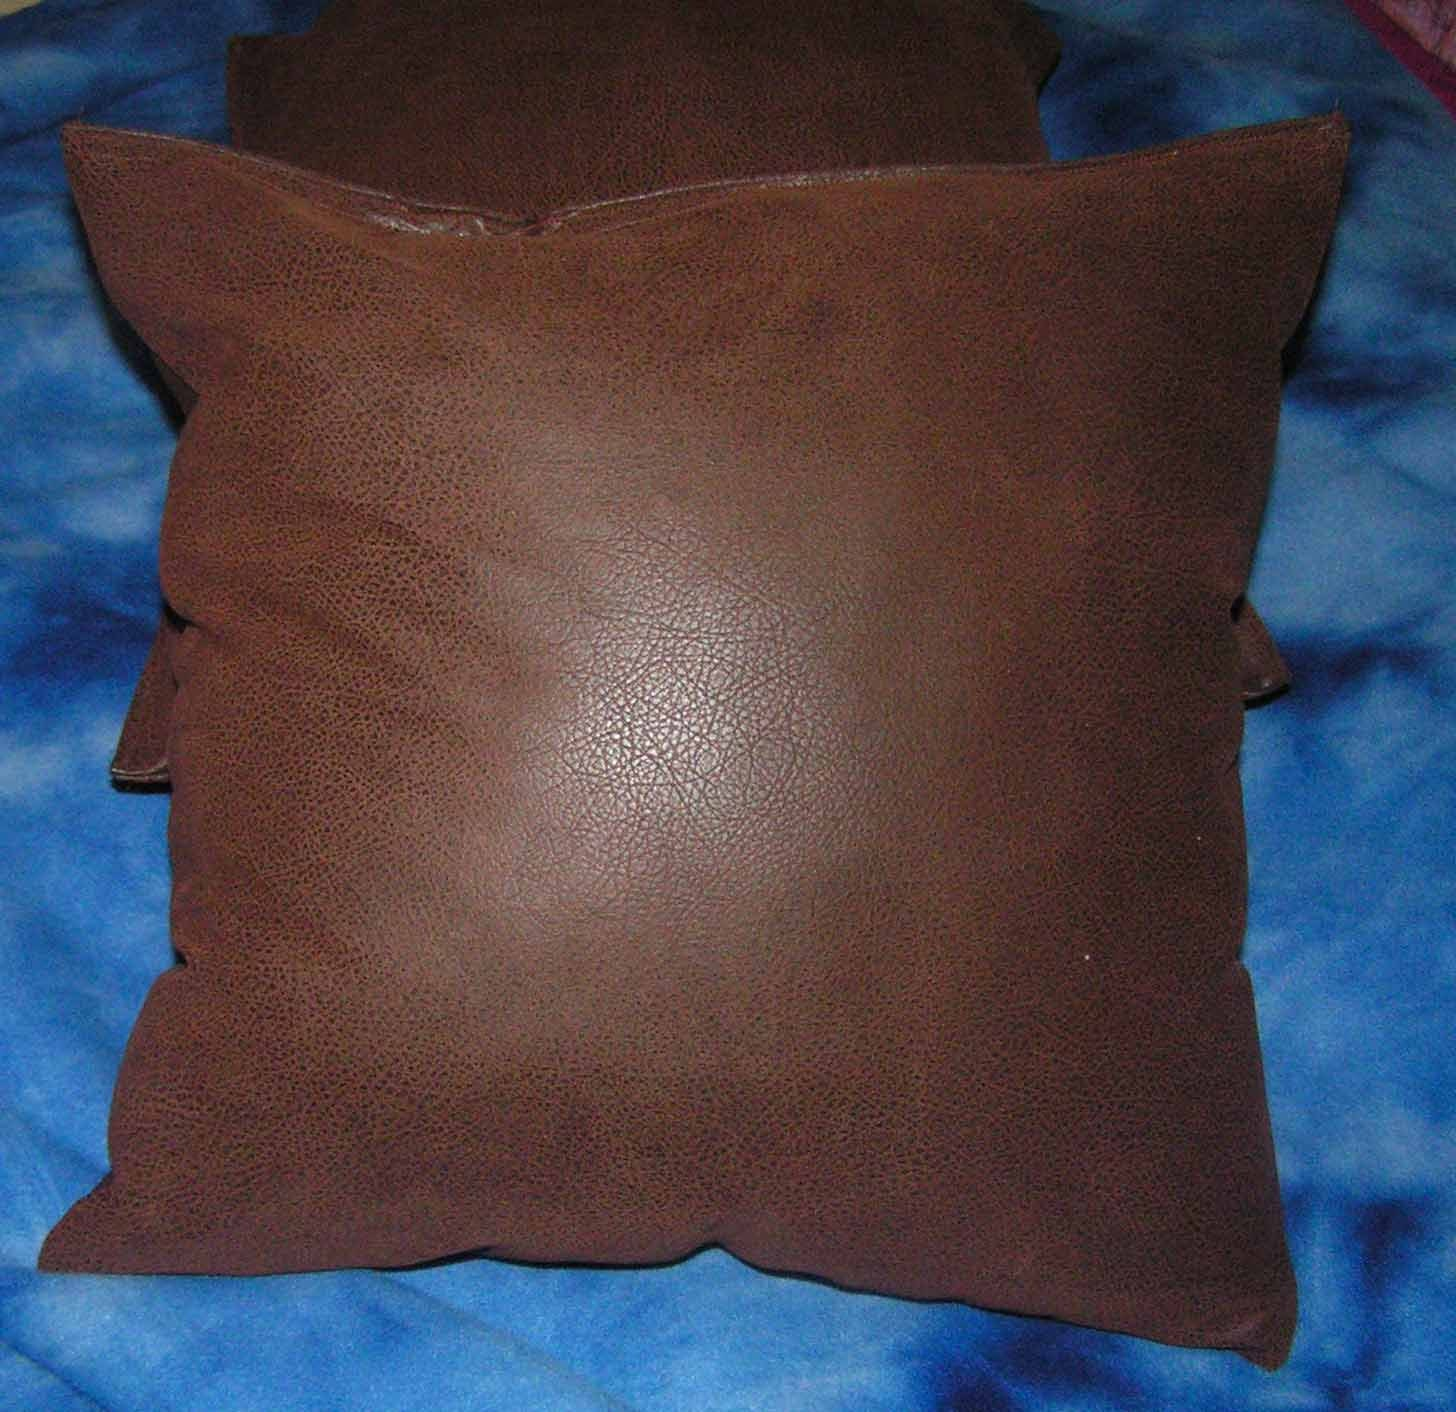 How To Make A Leather Throw Pillow : 2 brown faux leather throw pillow covers /pillow by biggergez